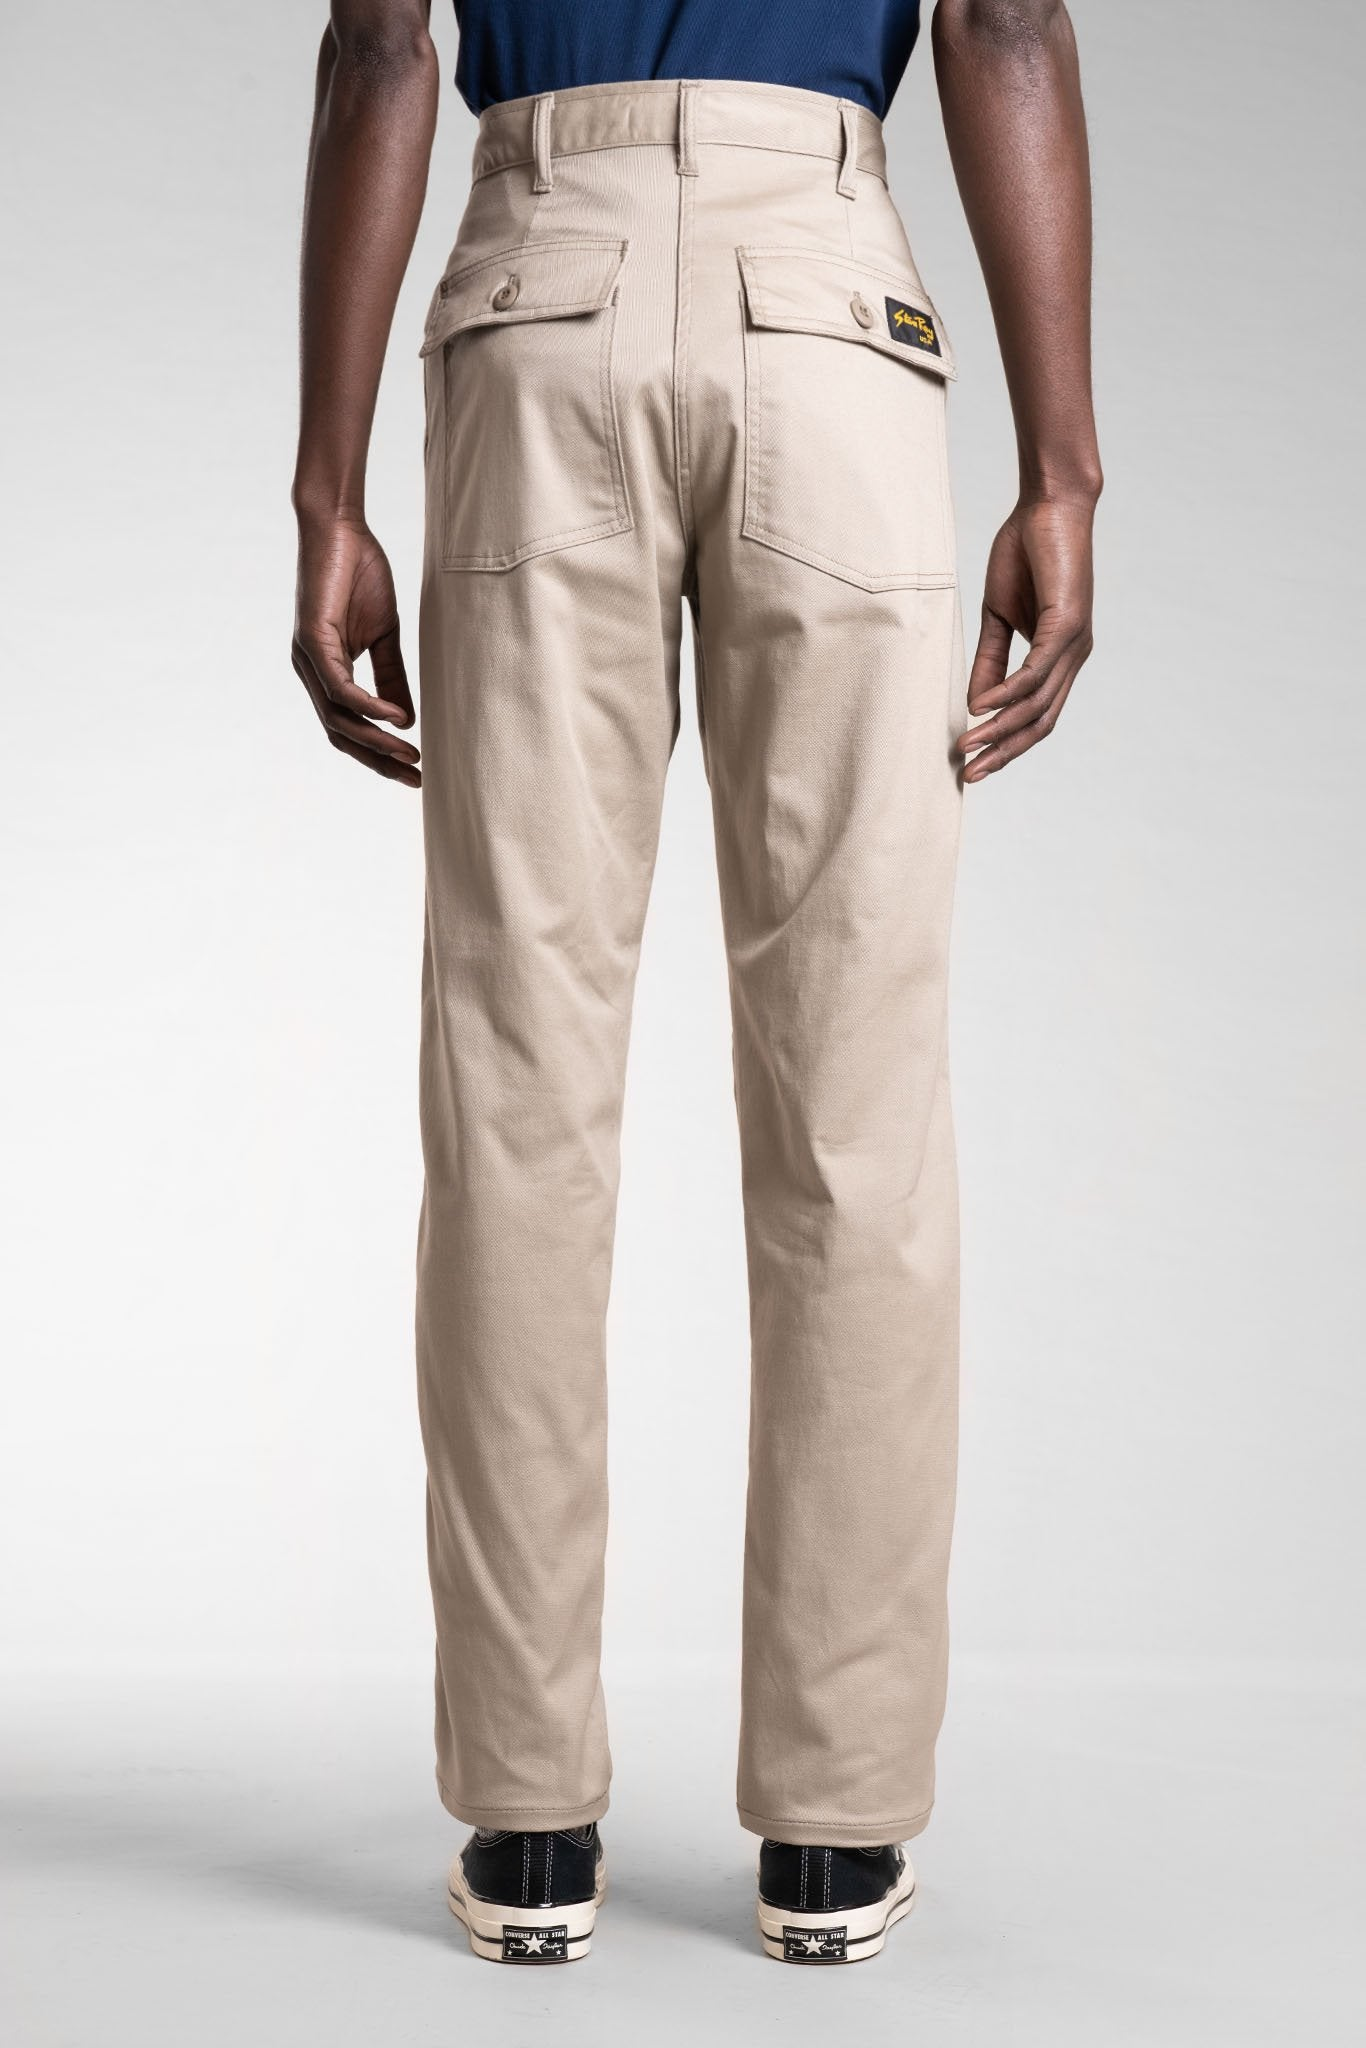 stan ray - taper fit fatigue pant 2